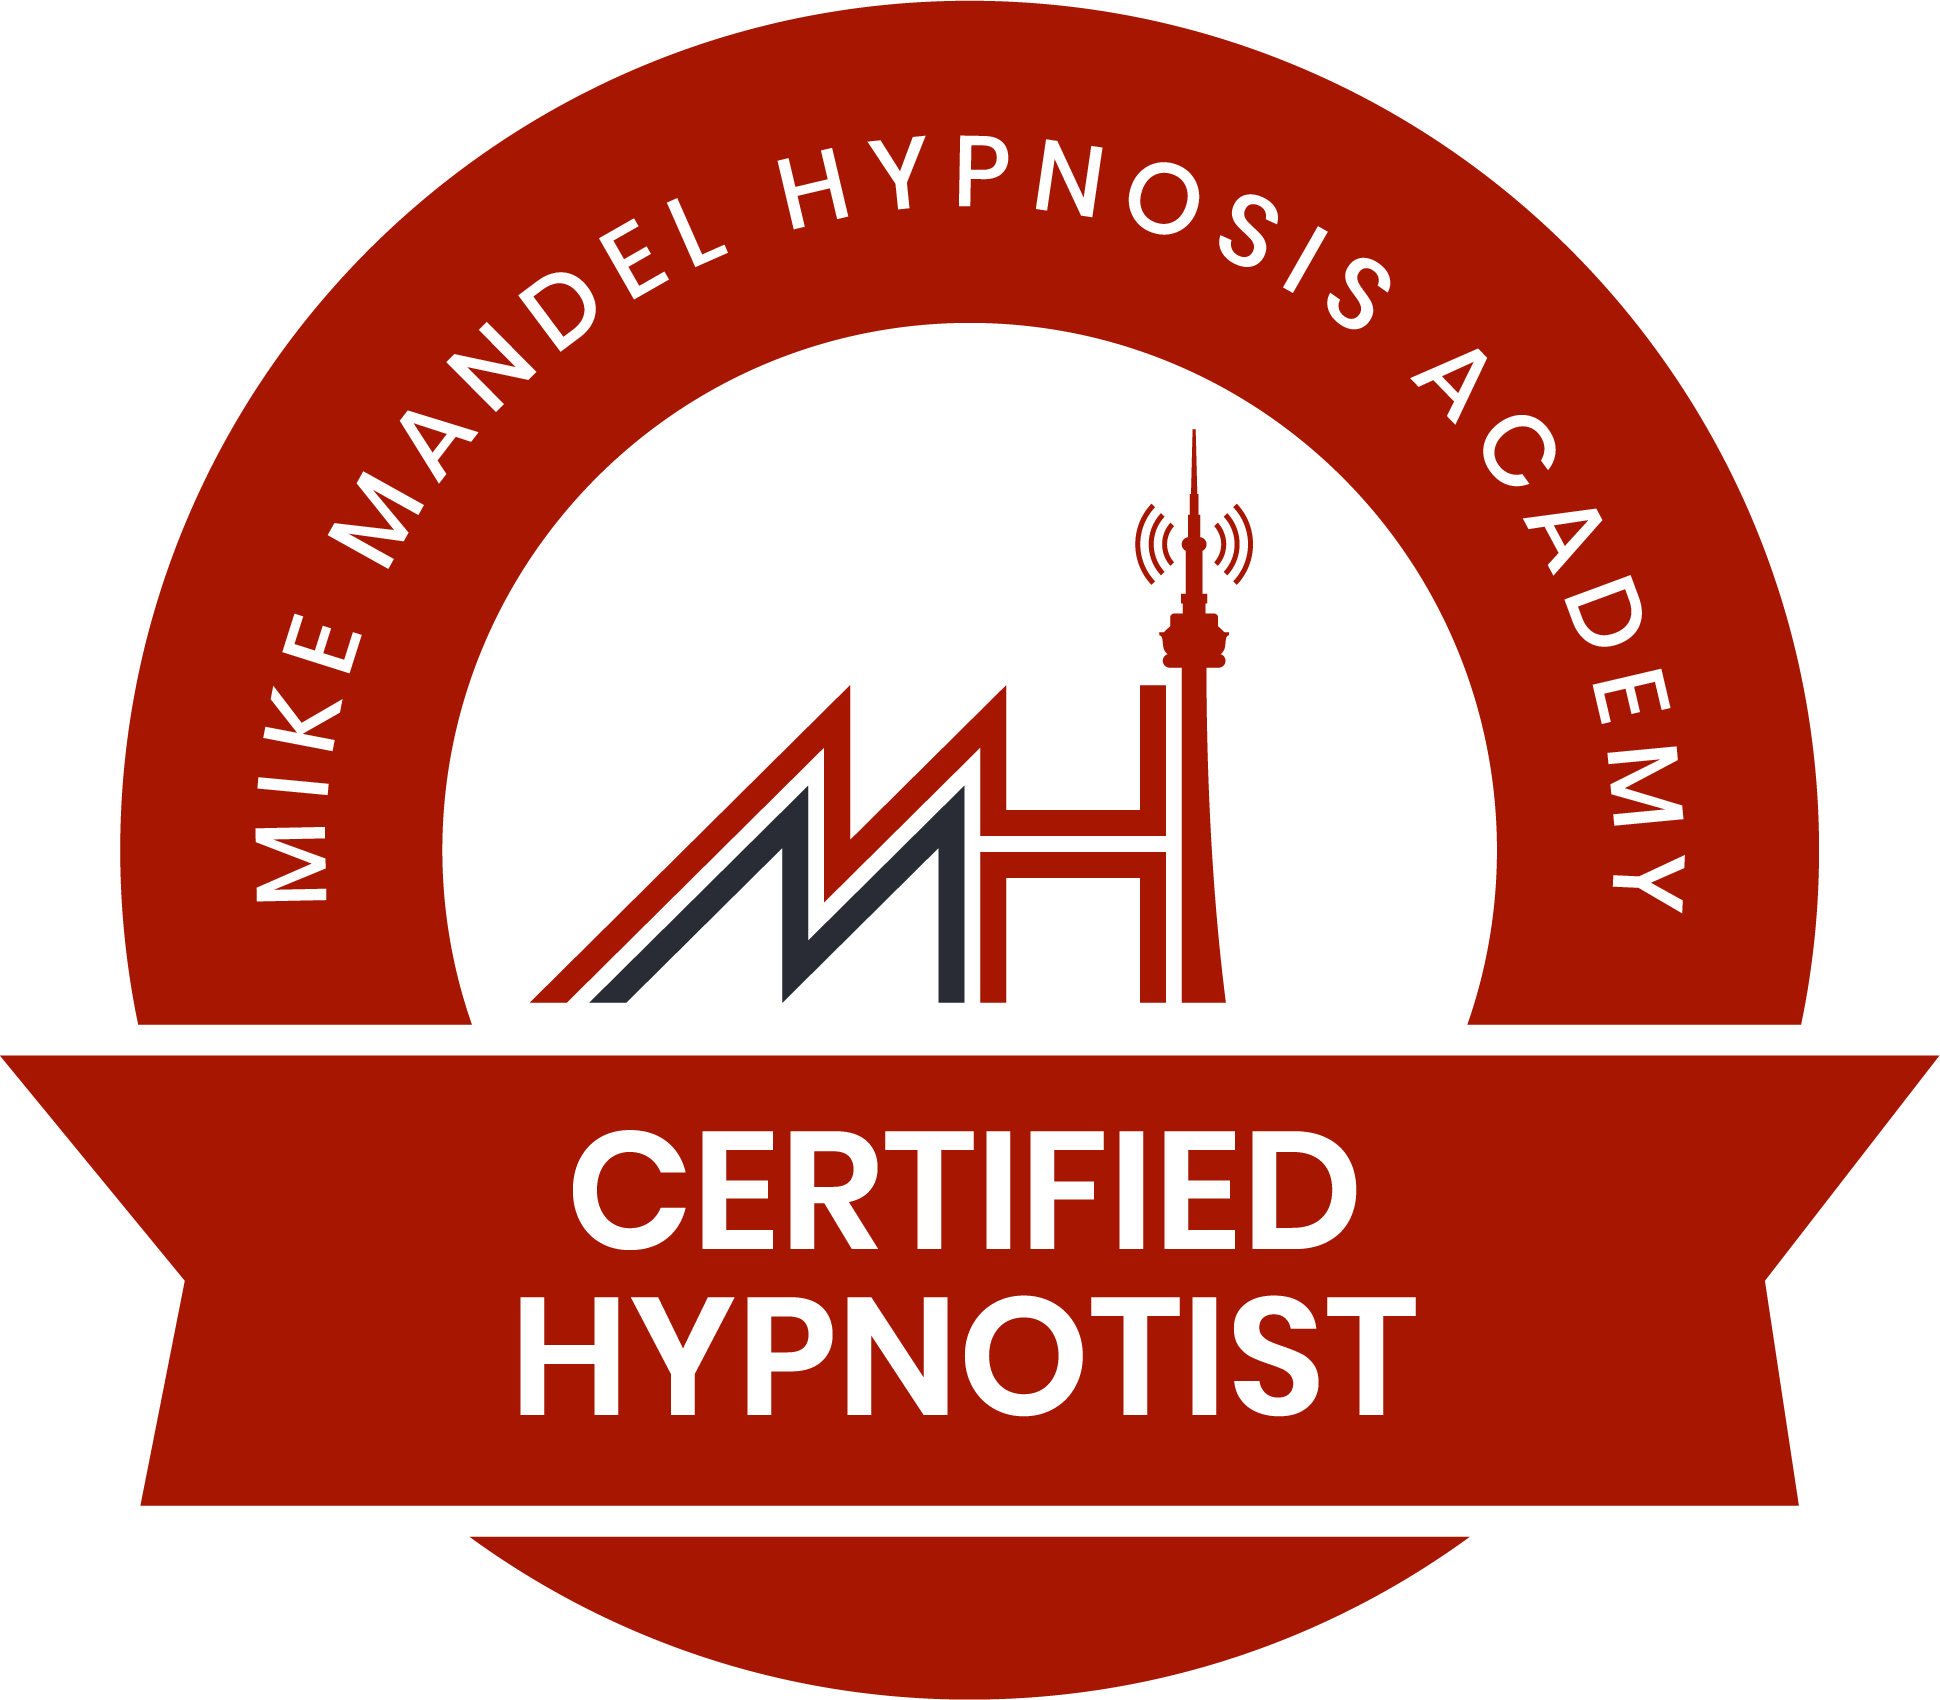 CNHC, NCH and Mike Mandel Hypnosis Qualifications